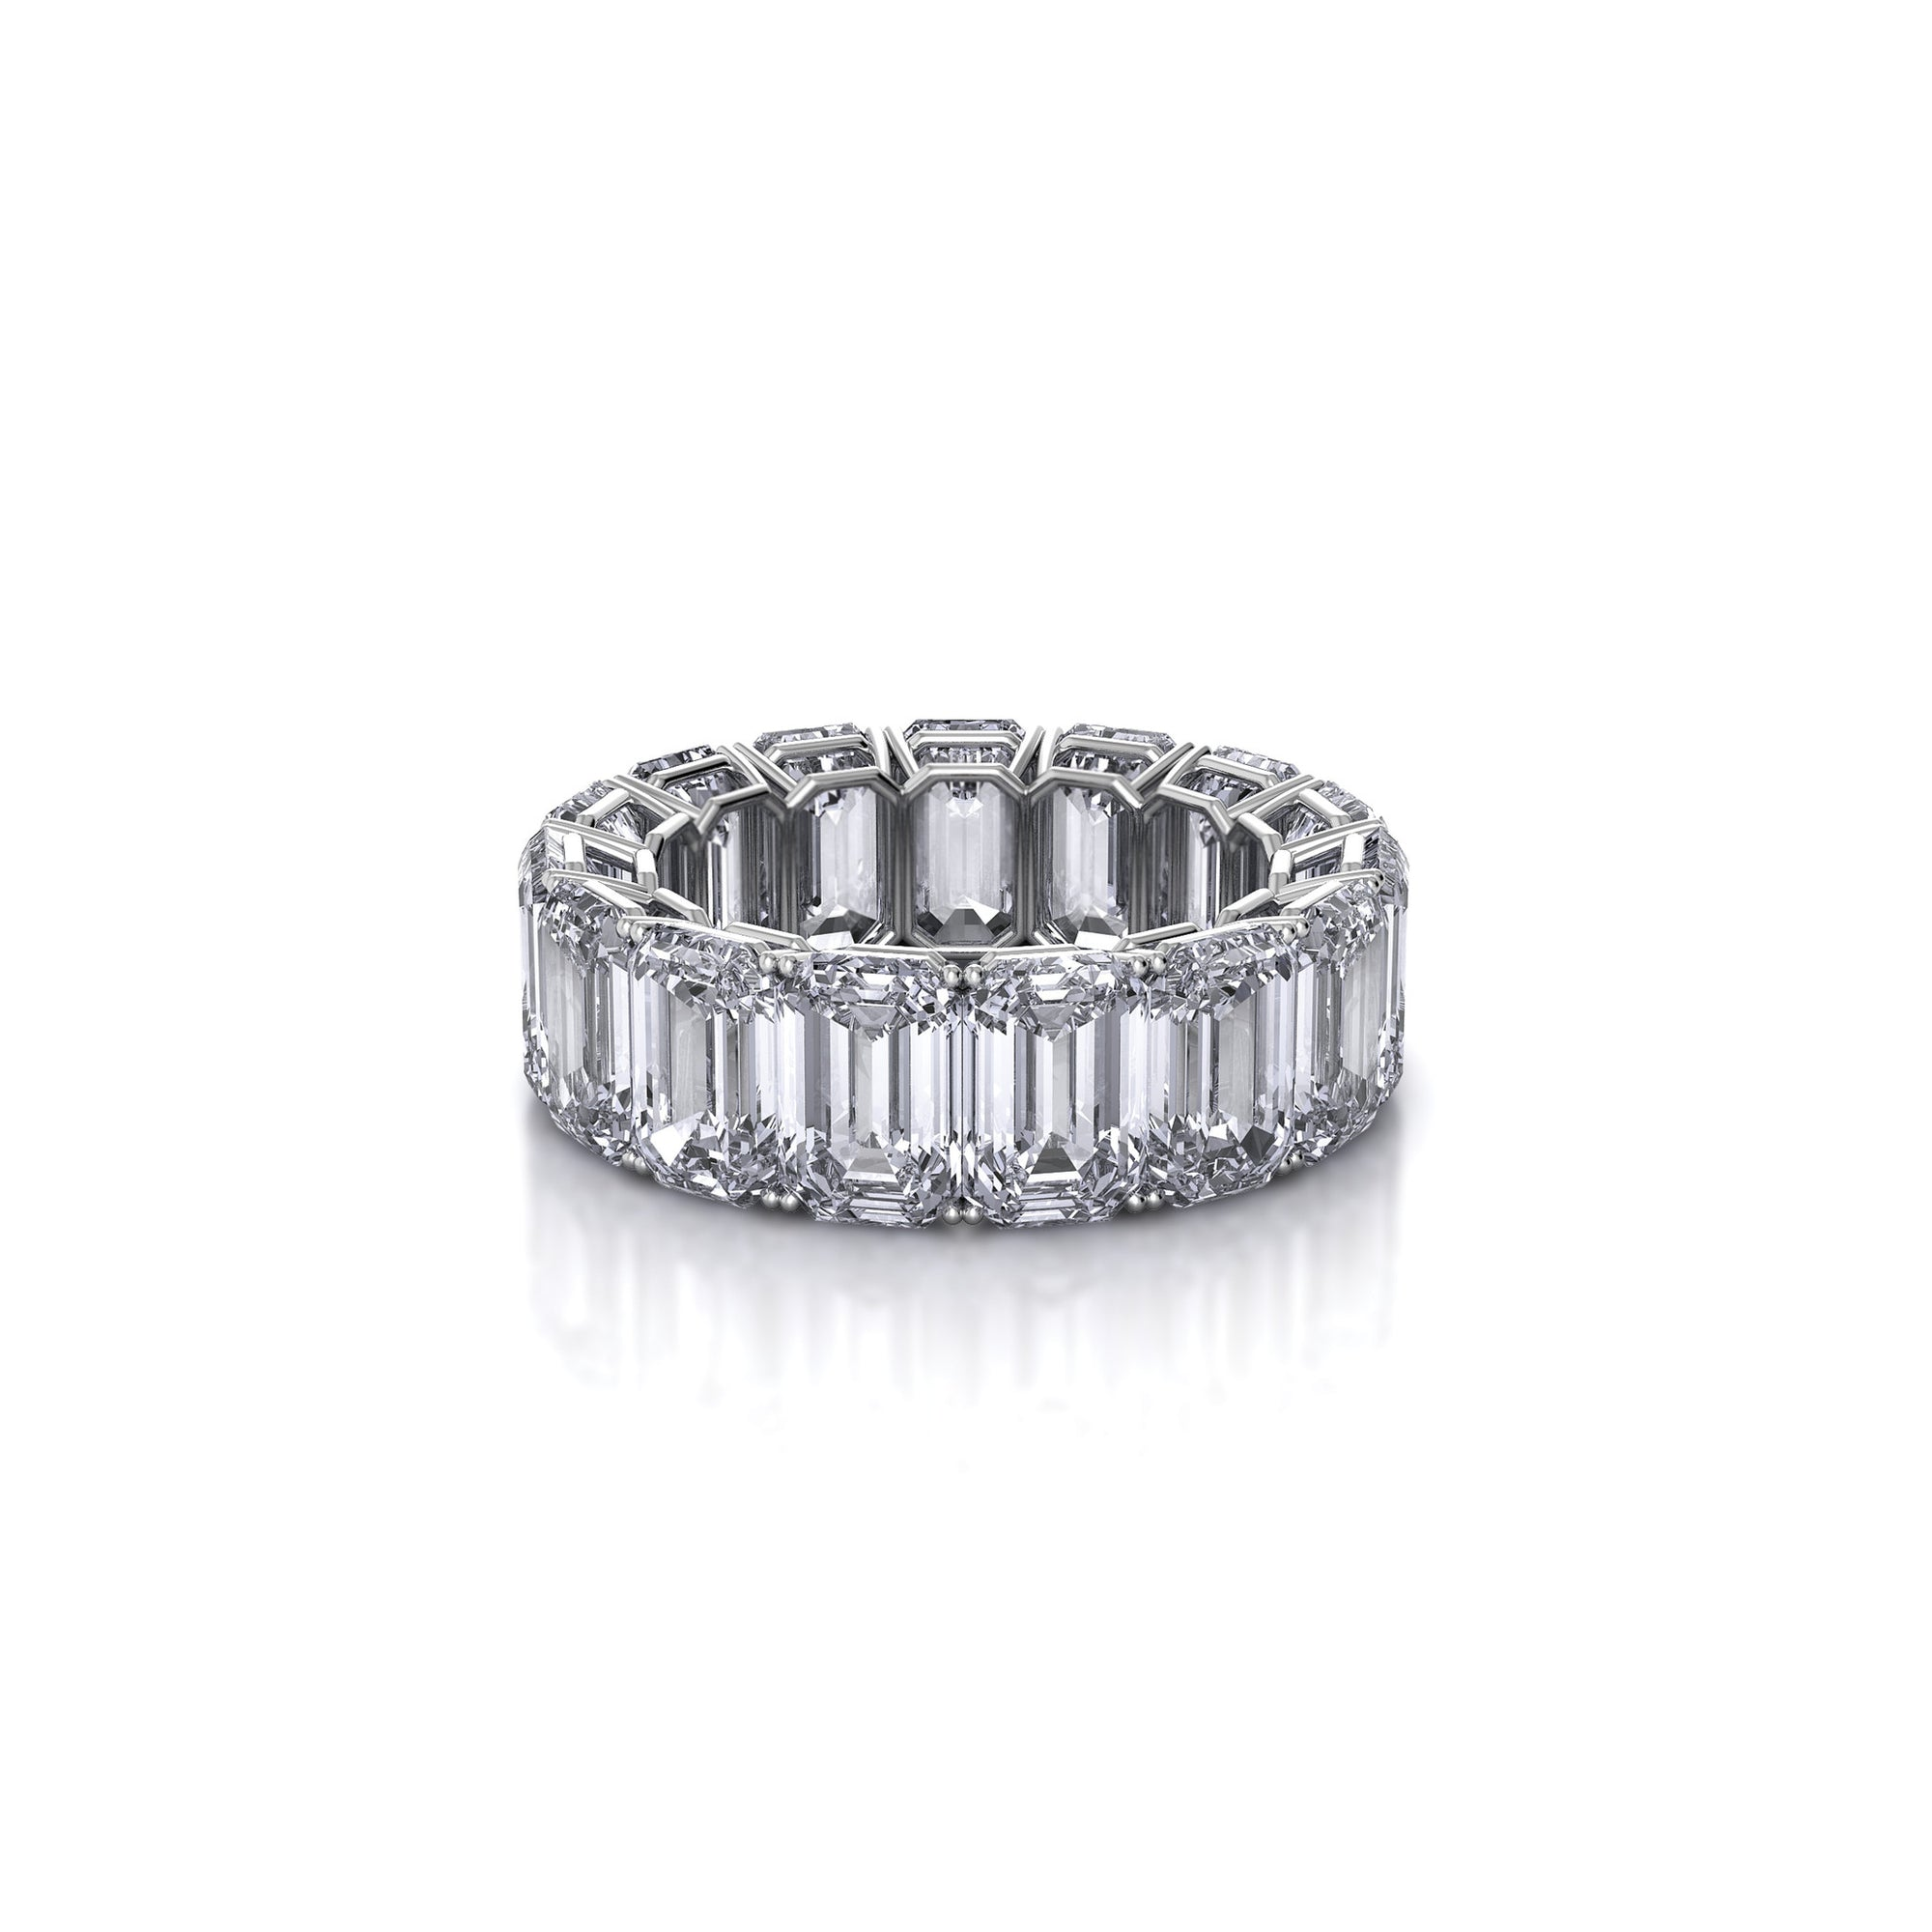 em gold french ring white emerald anniversary diamond cut long s diamonds jewelers eternity bands band new rings